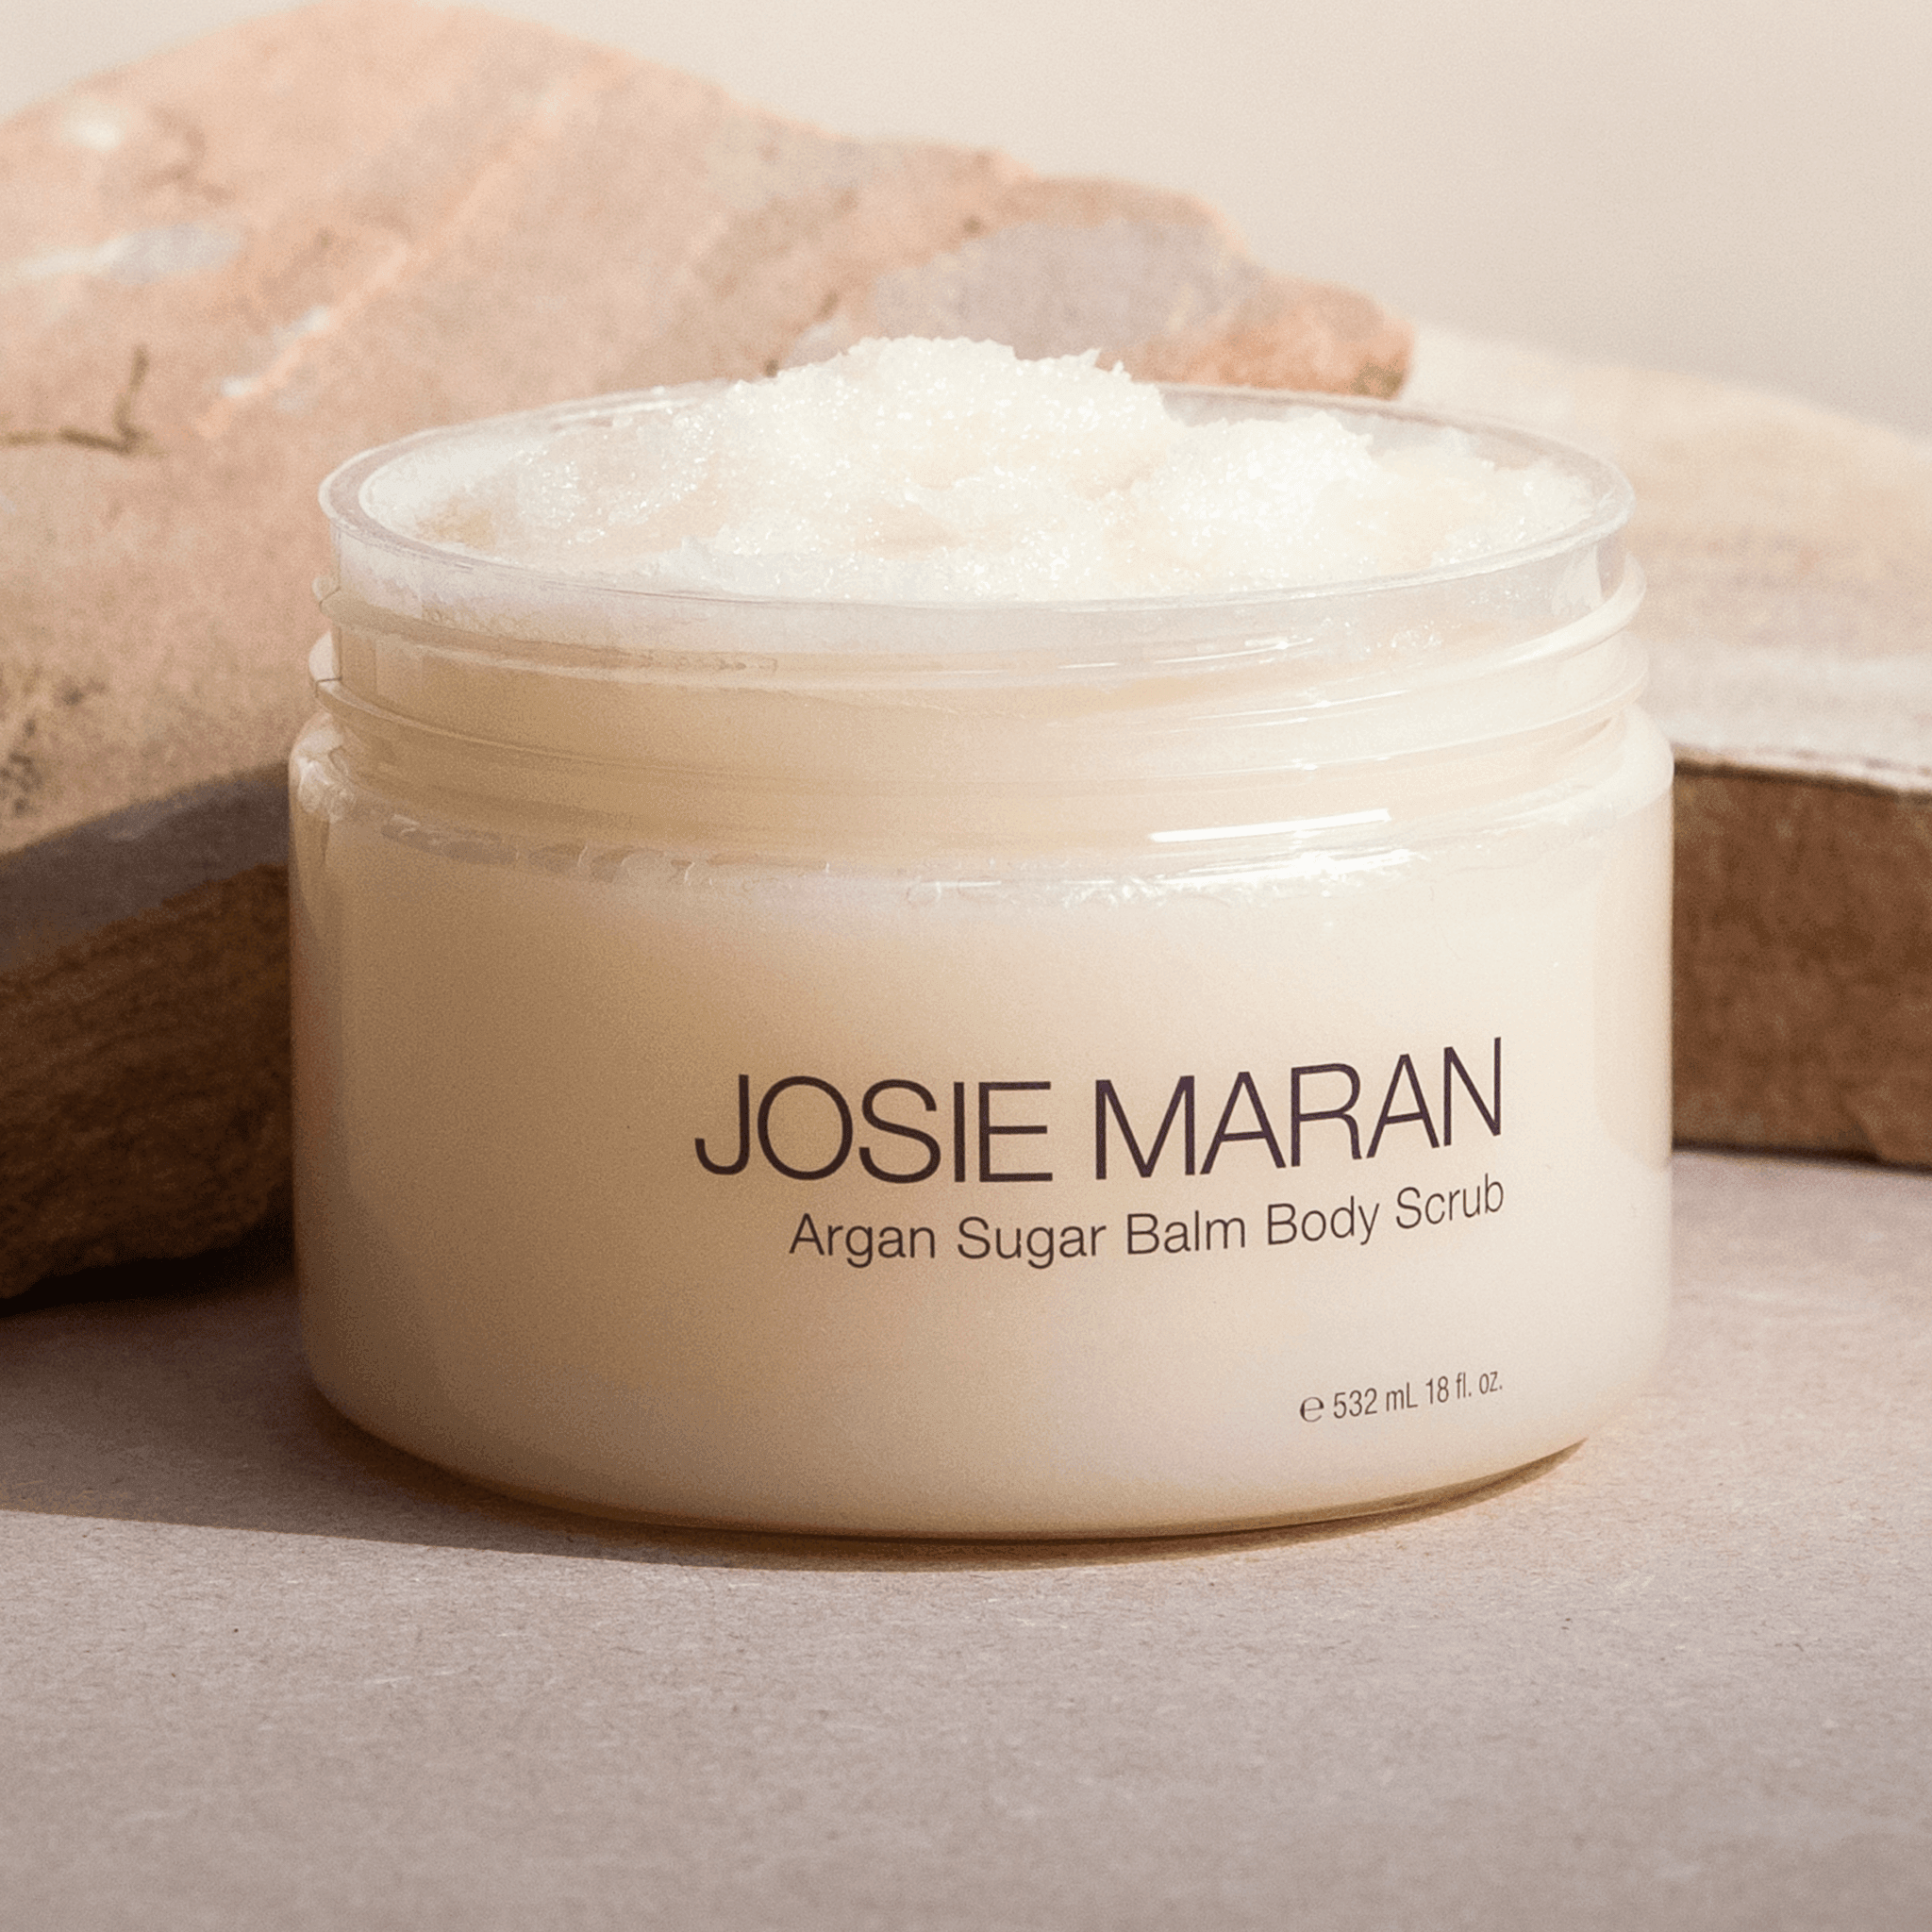 Argan Sugar Balm Body Scrub Super Size